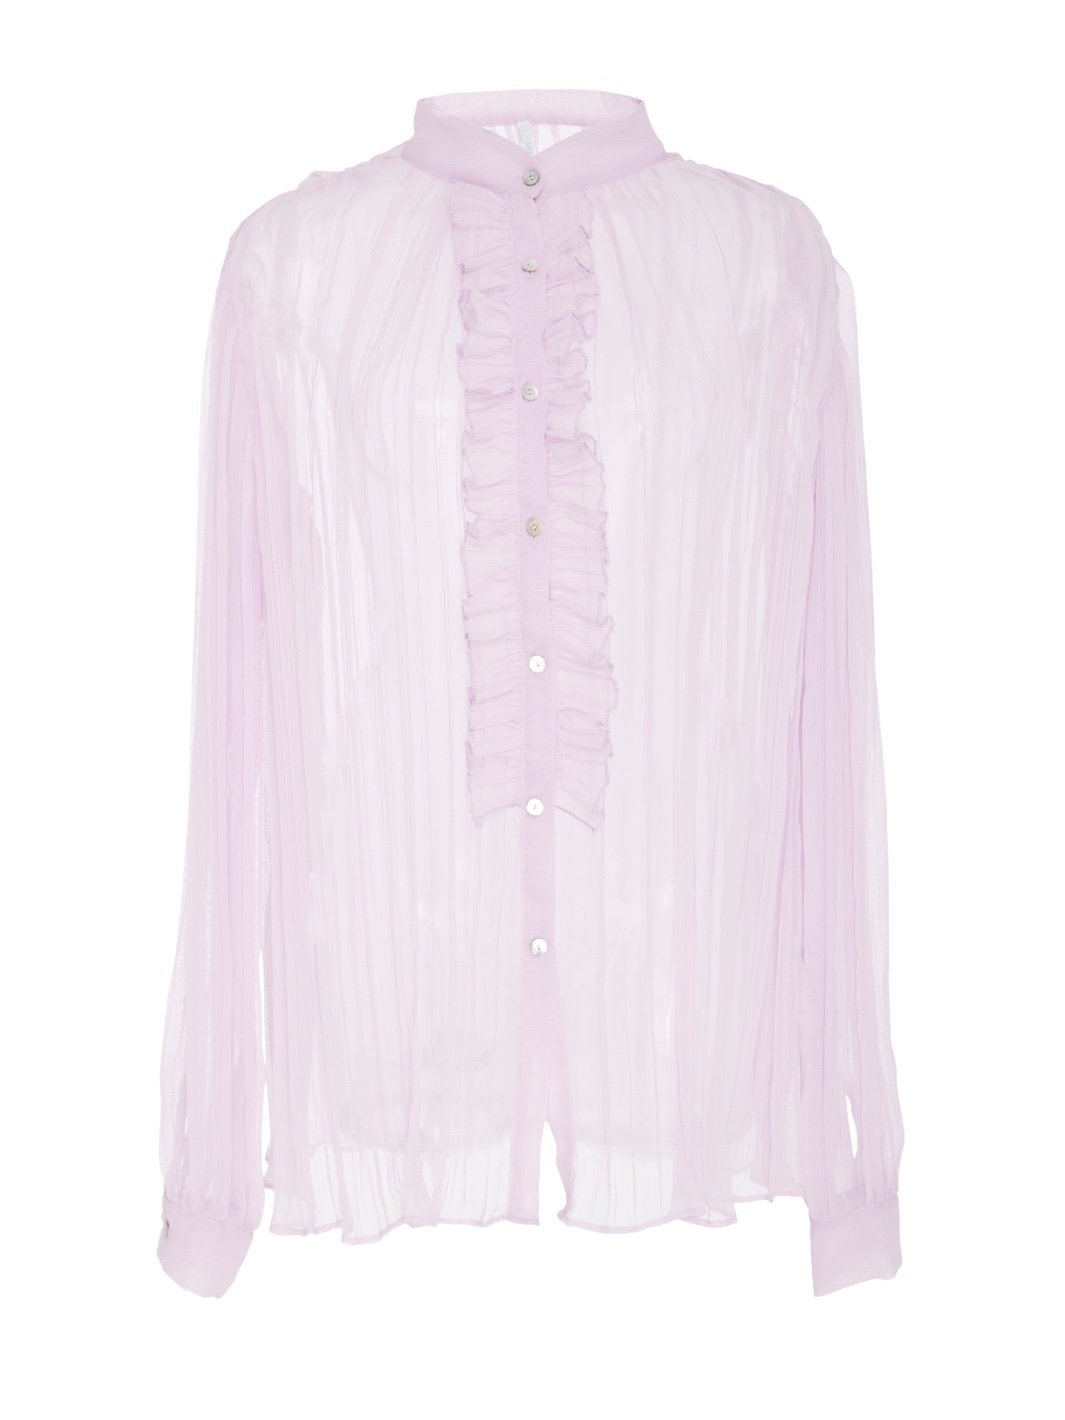 Bina Sheer Shirt - The Bobby Boga